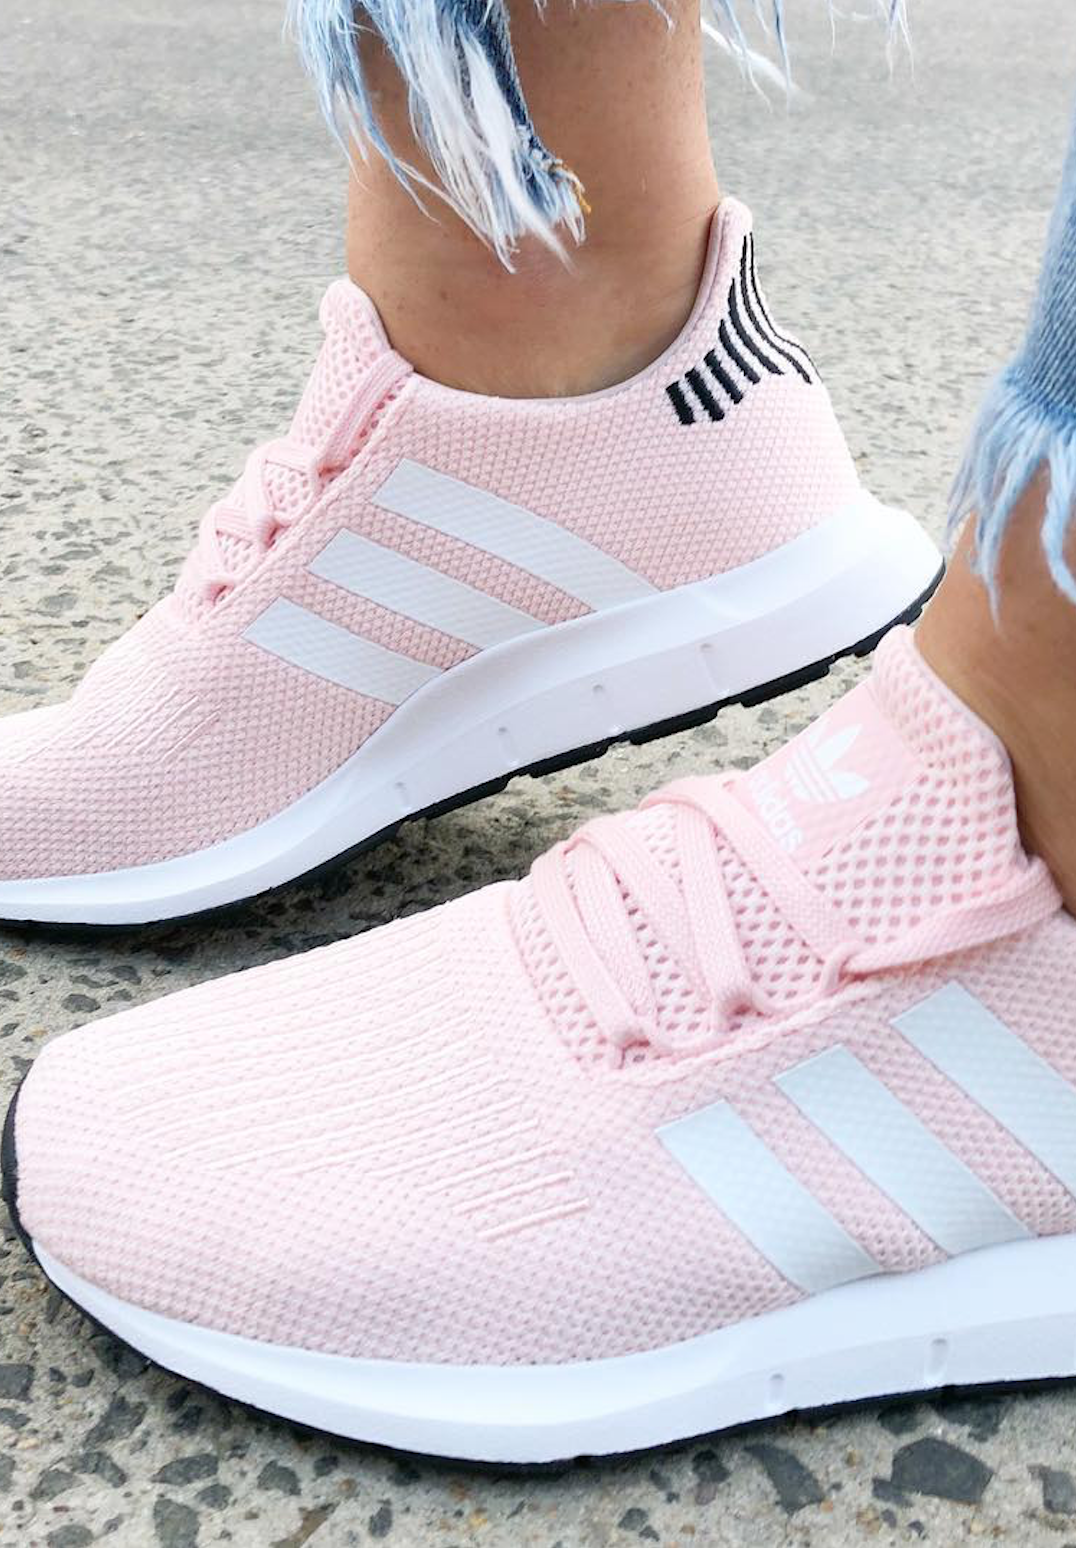 adidas Swift Run Sneakers in Icy Pink. Seriously stylish shoes 2018. 98da2932244f3